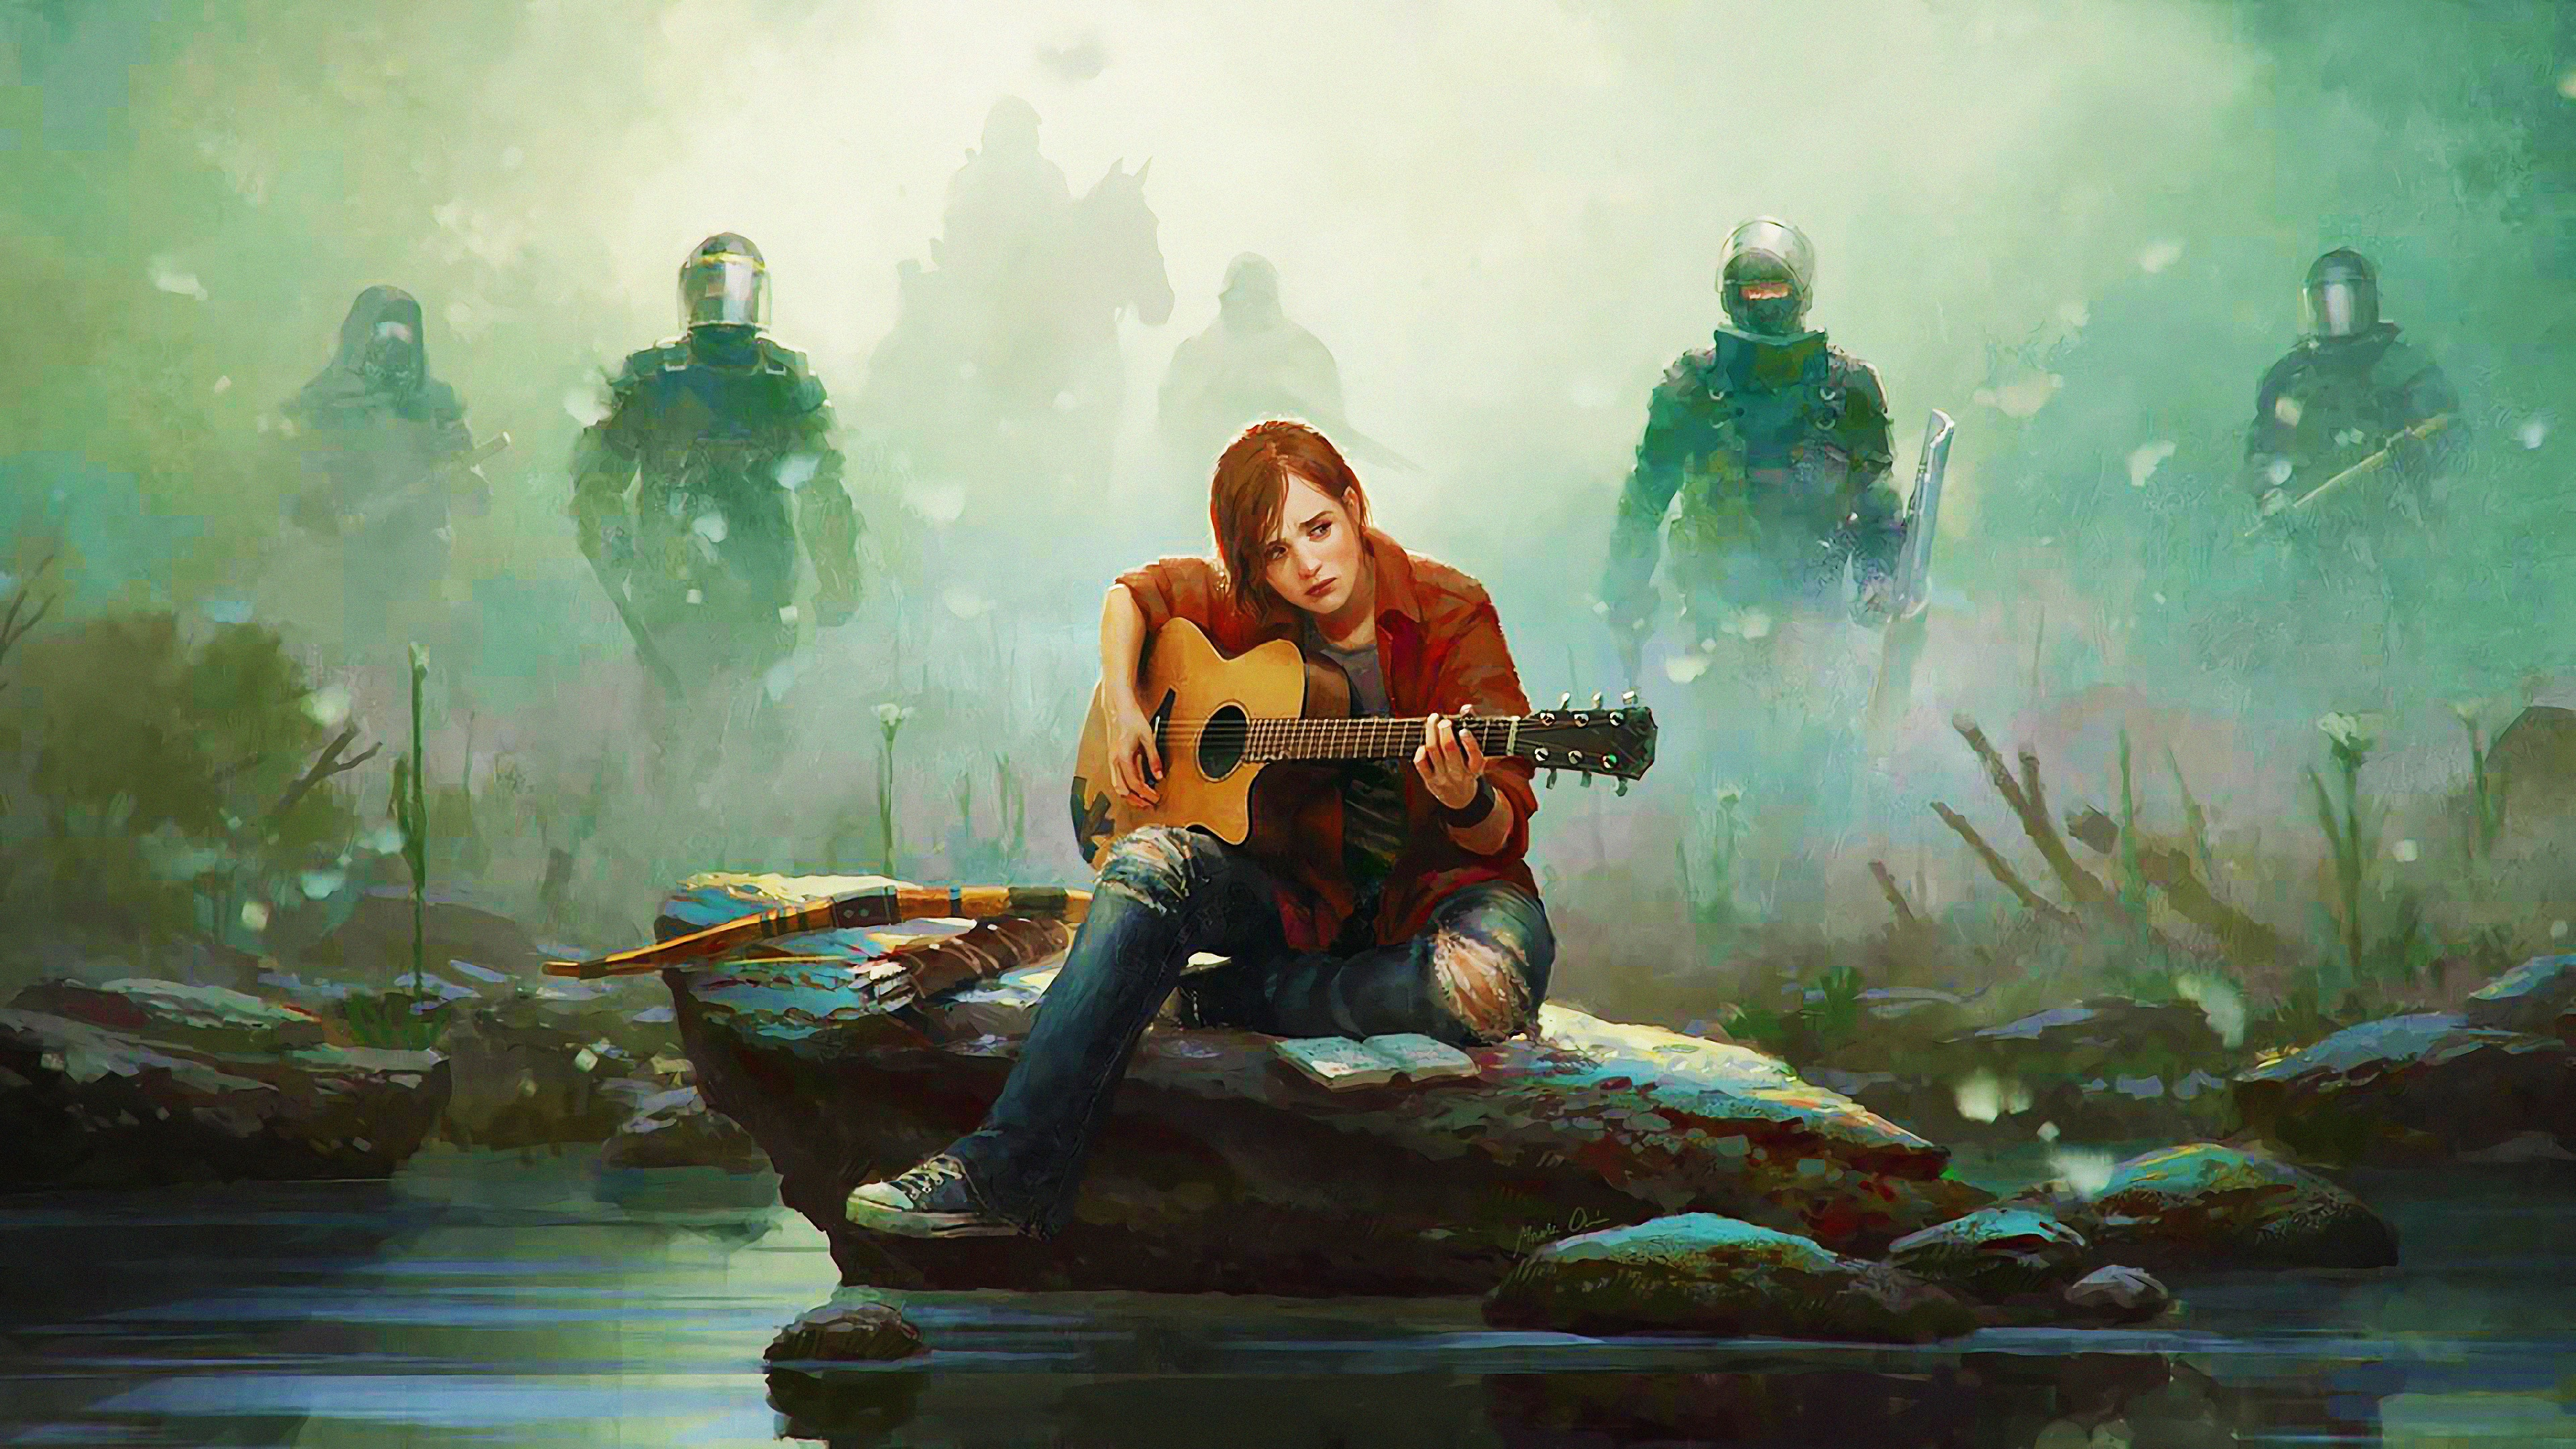 Ellie The Last of Us Part II 4K 17647 3840x2160